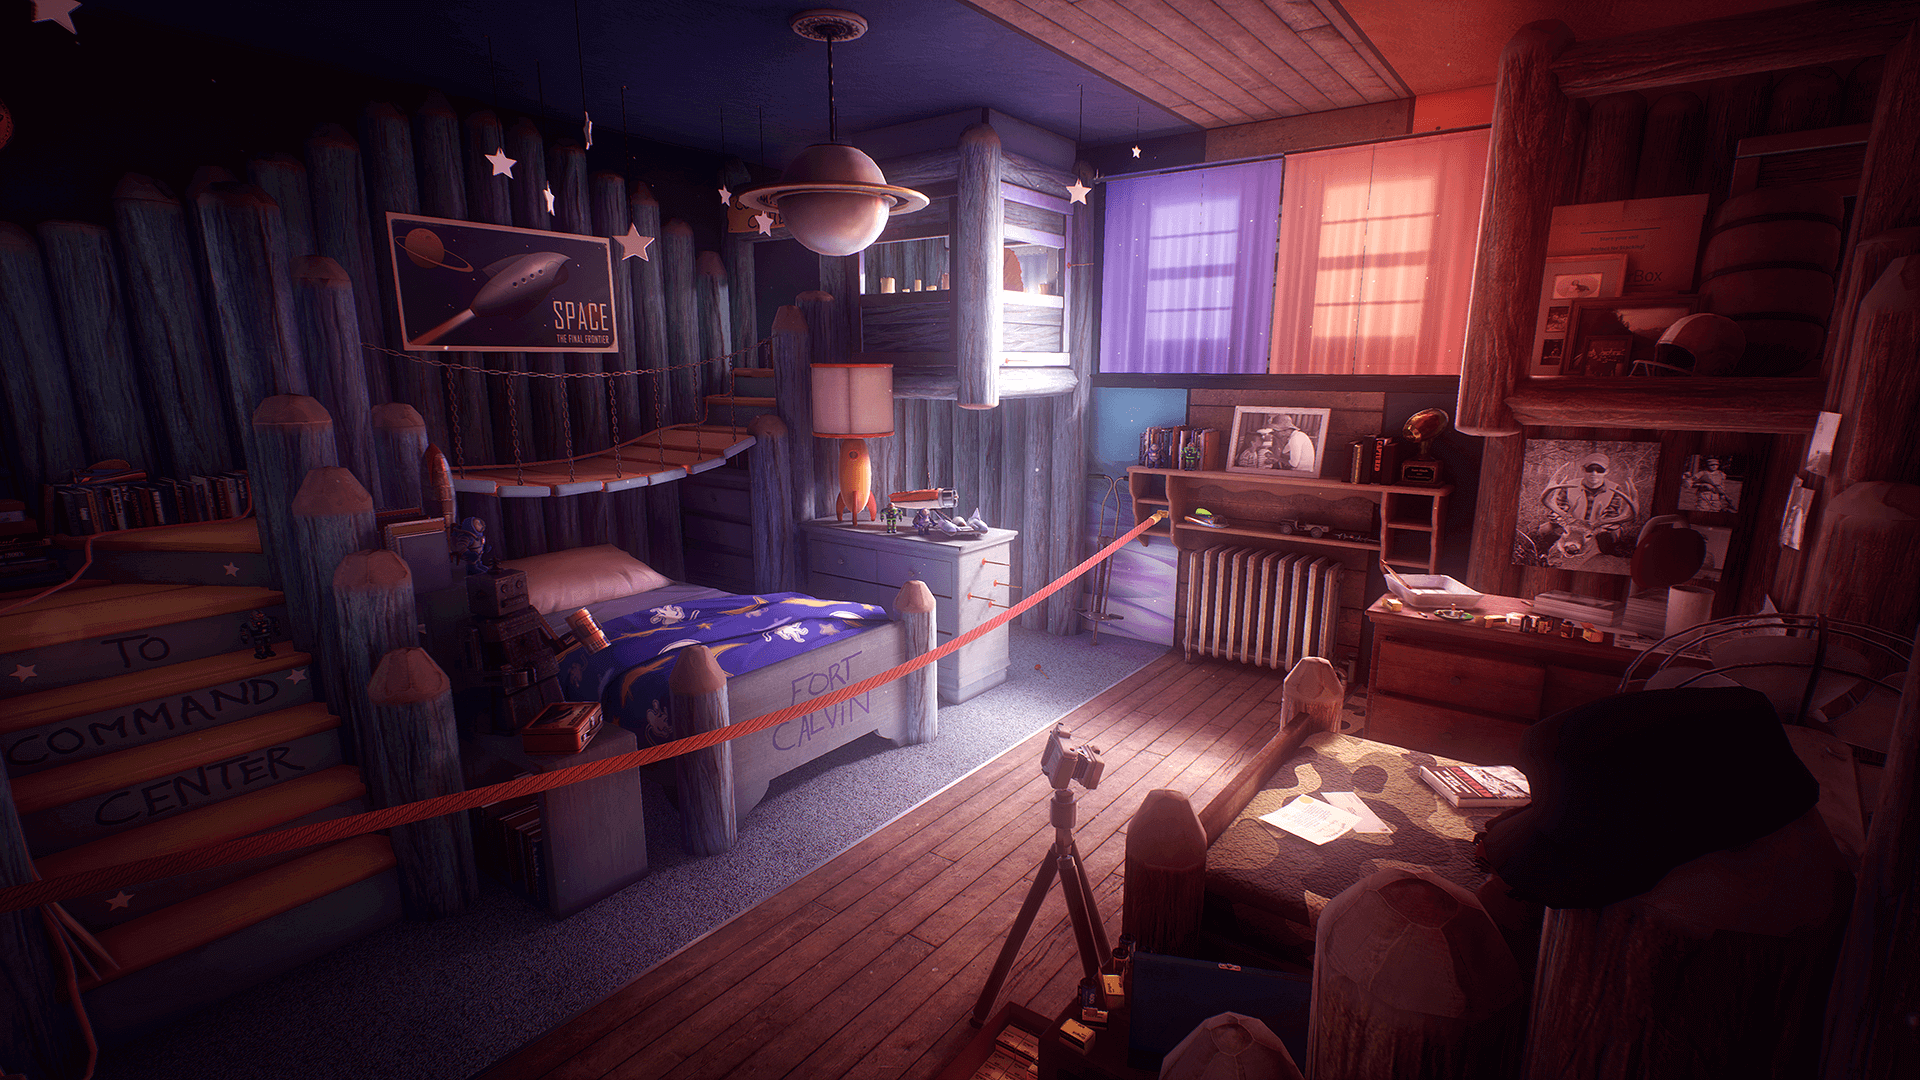 What Remains of Edith Finch - What Remains of Edith Finch